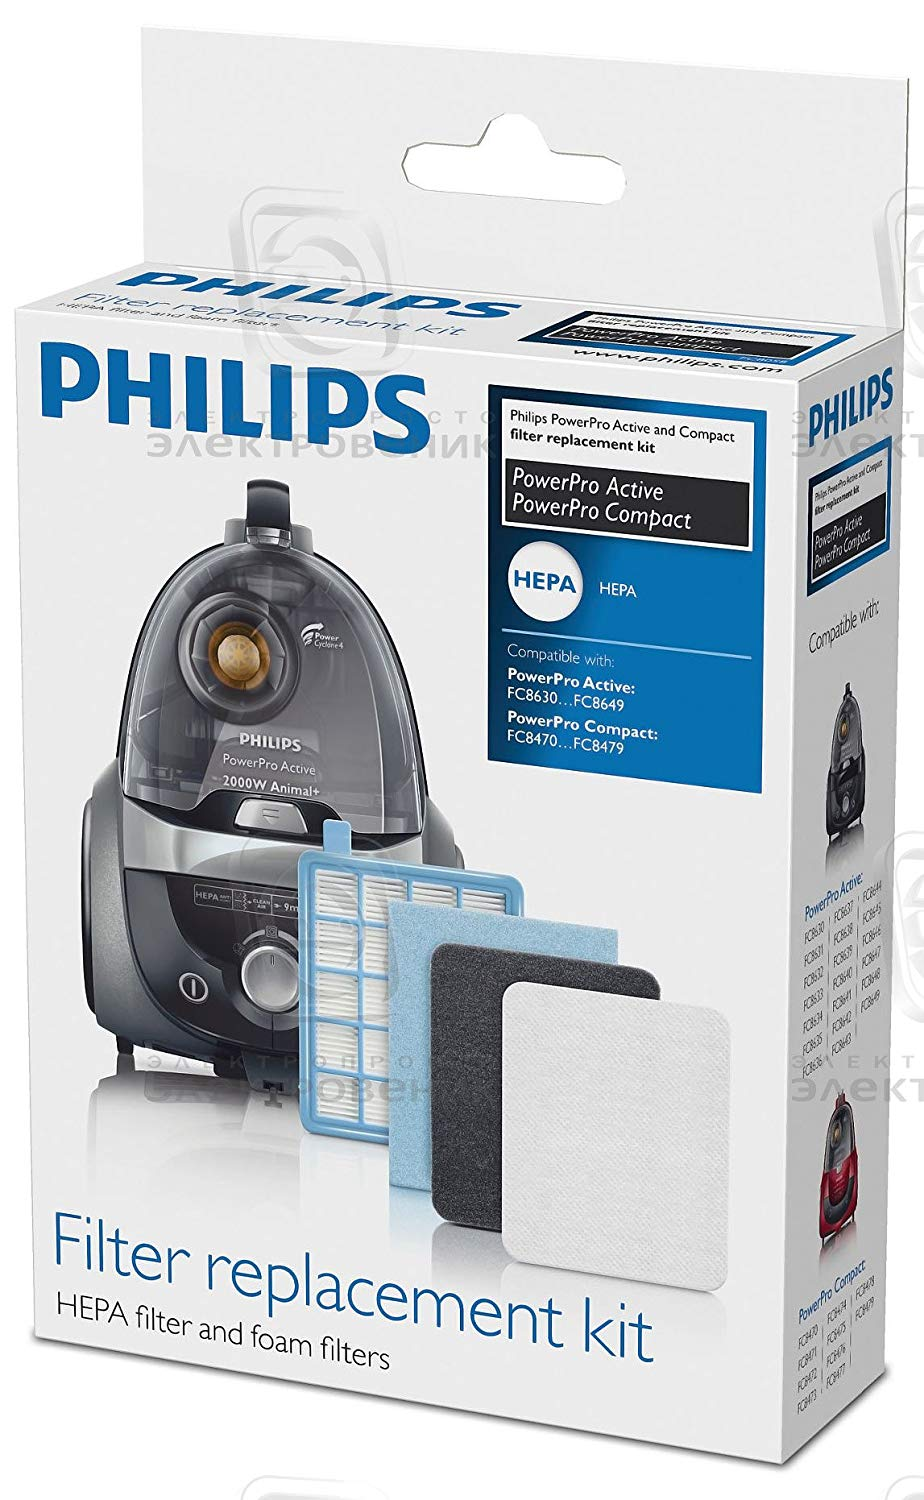 Philips Smart Air Purifier - thing to consider before buying an air purifier - Topratedhomeproducts